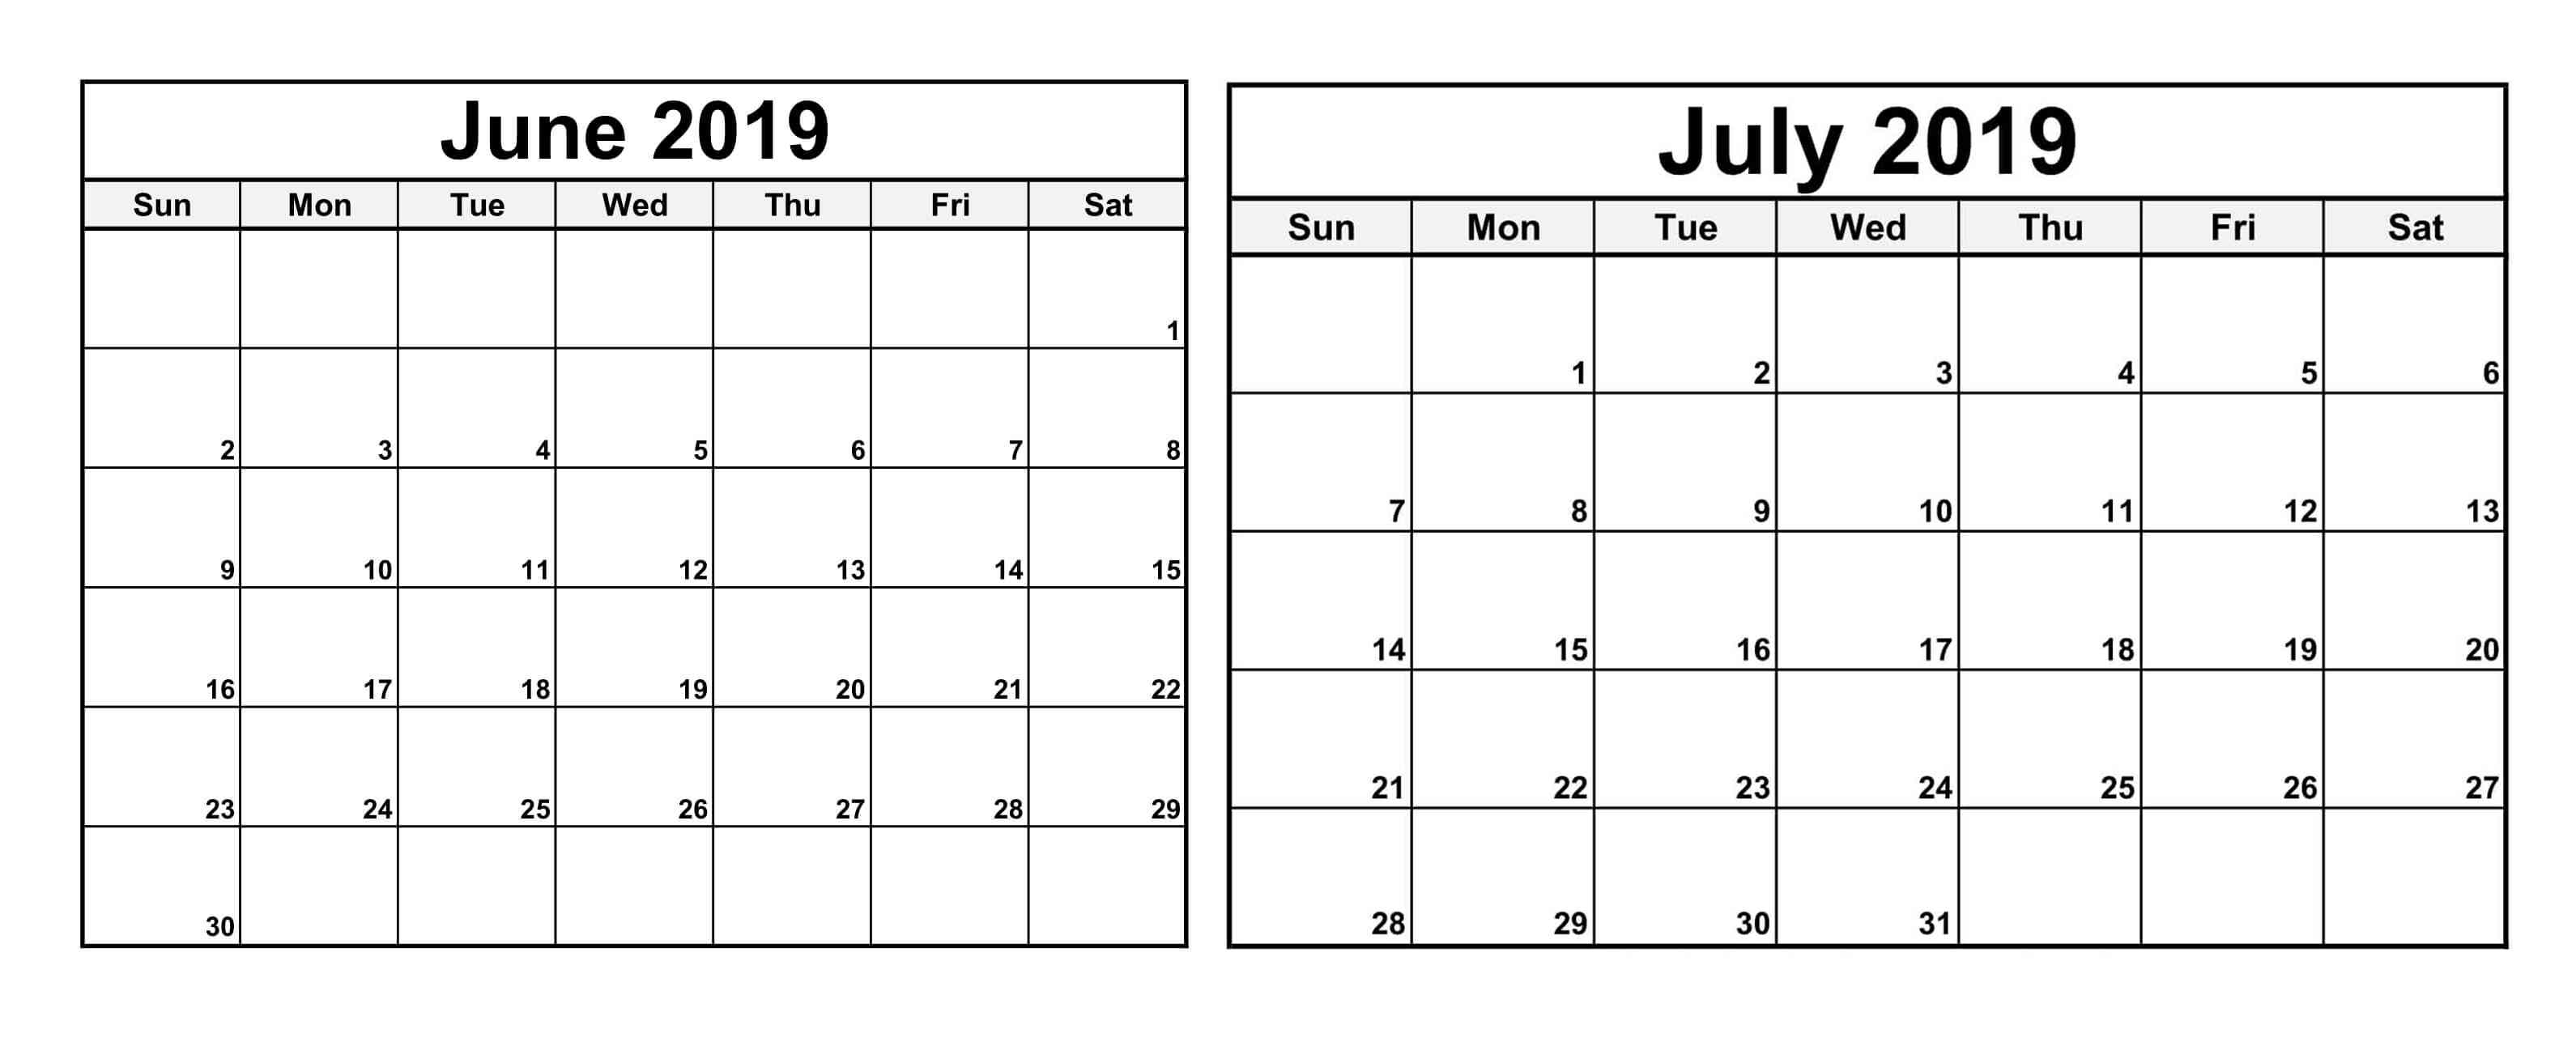 June July 2019 Calendar With Holiday – Magic Calendar 2019 Printable within Calendar For June July